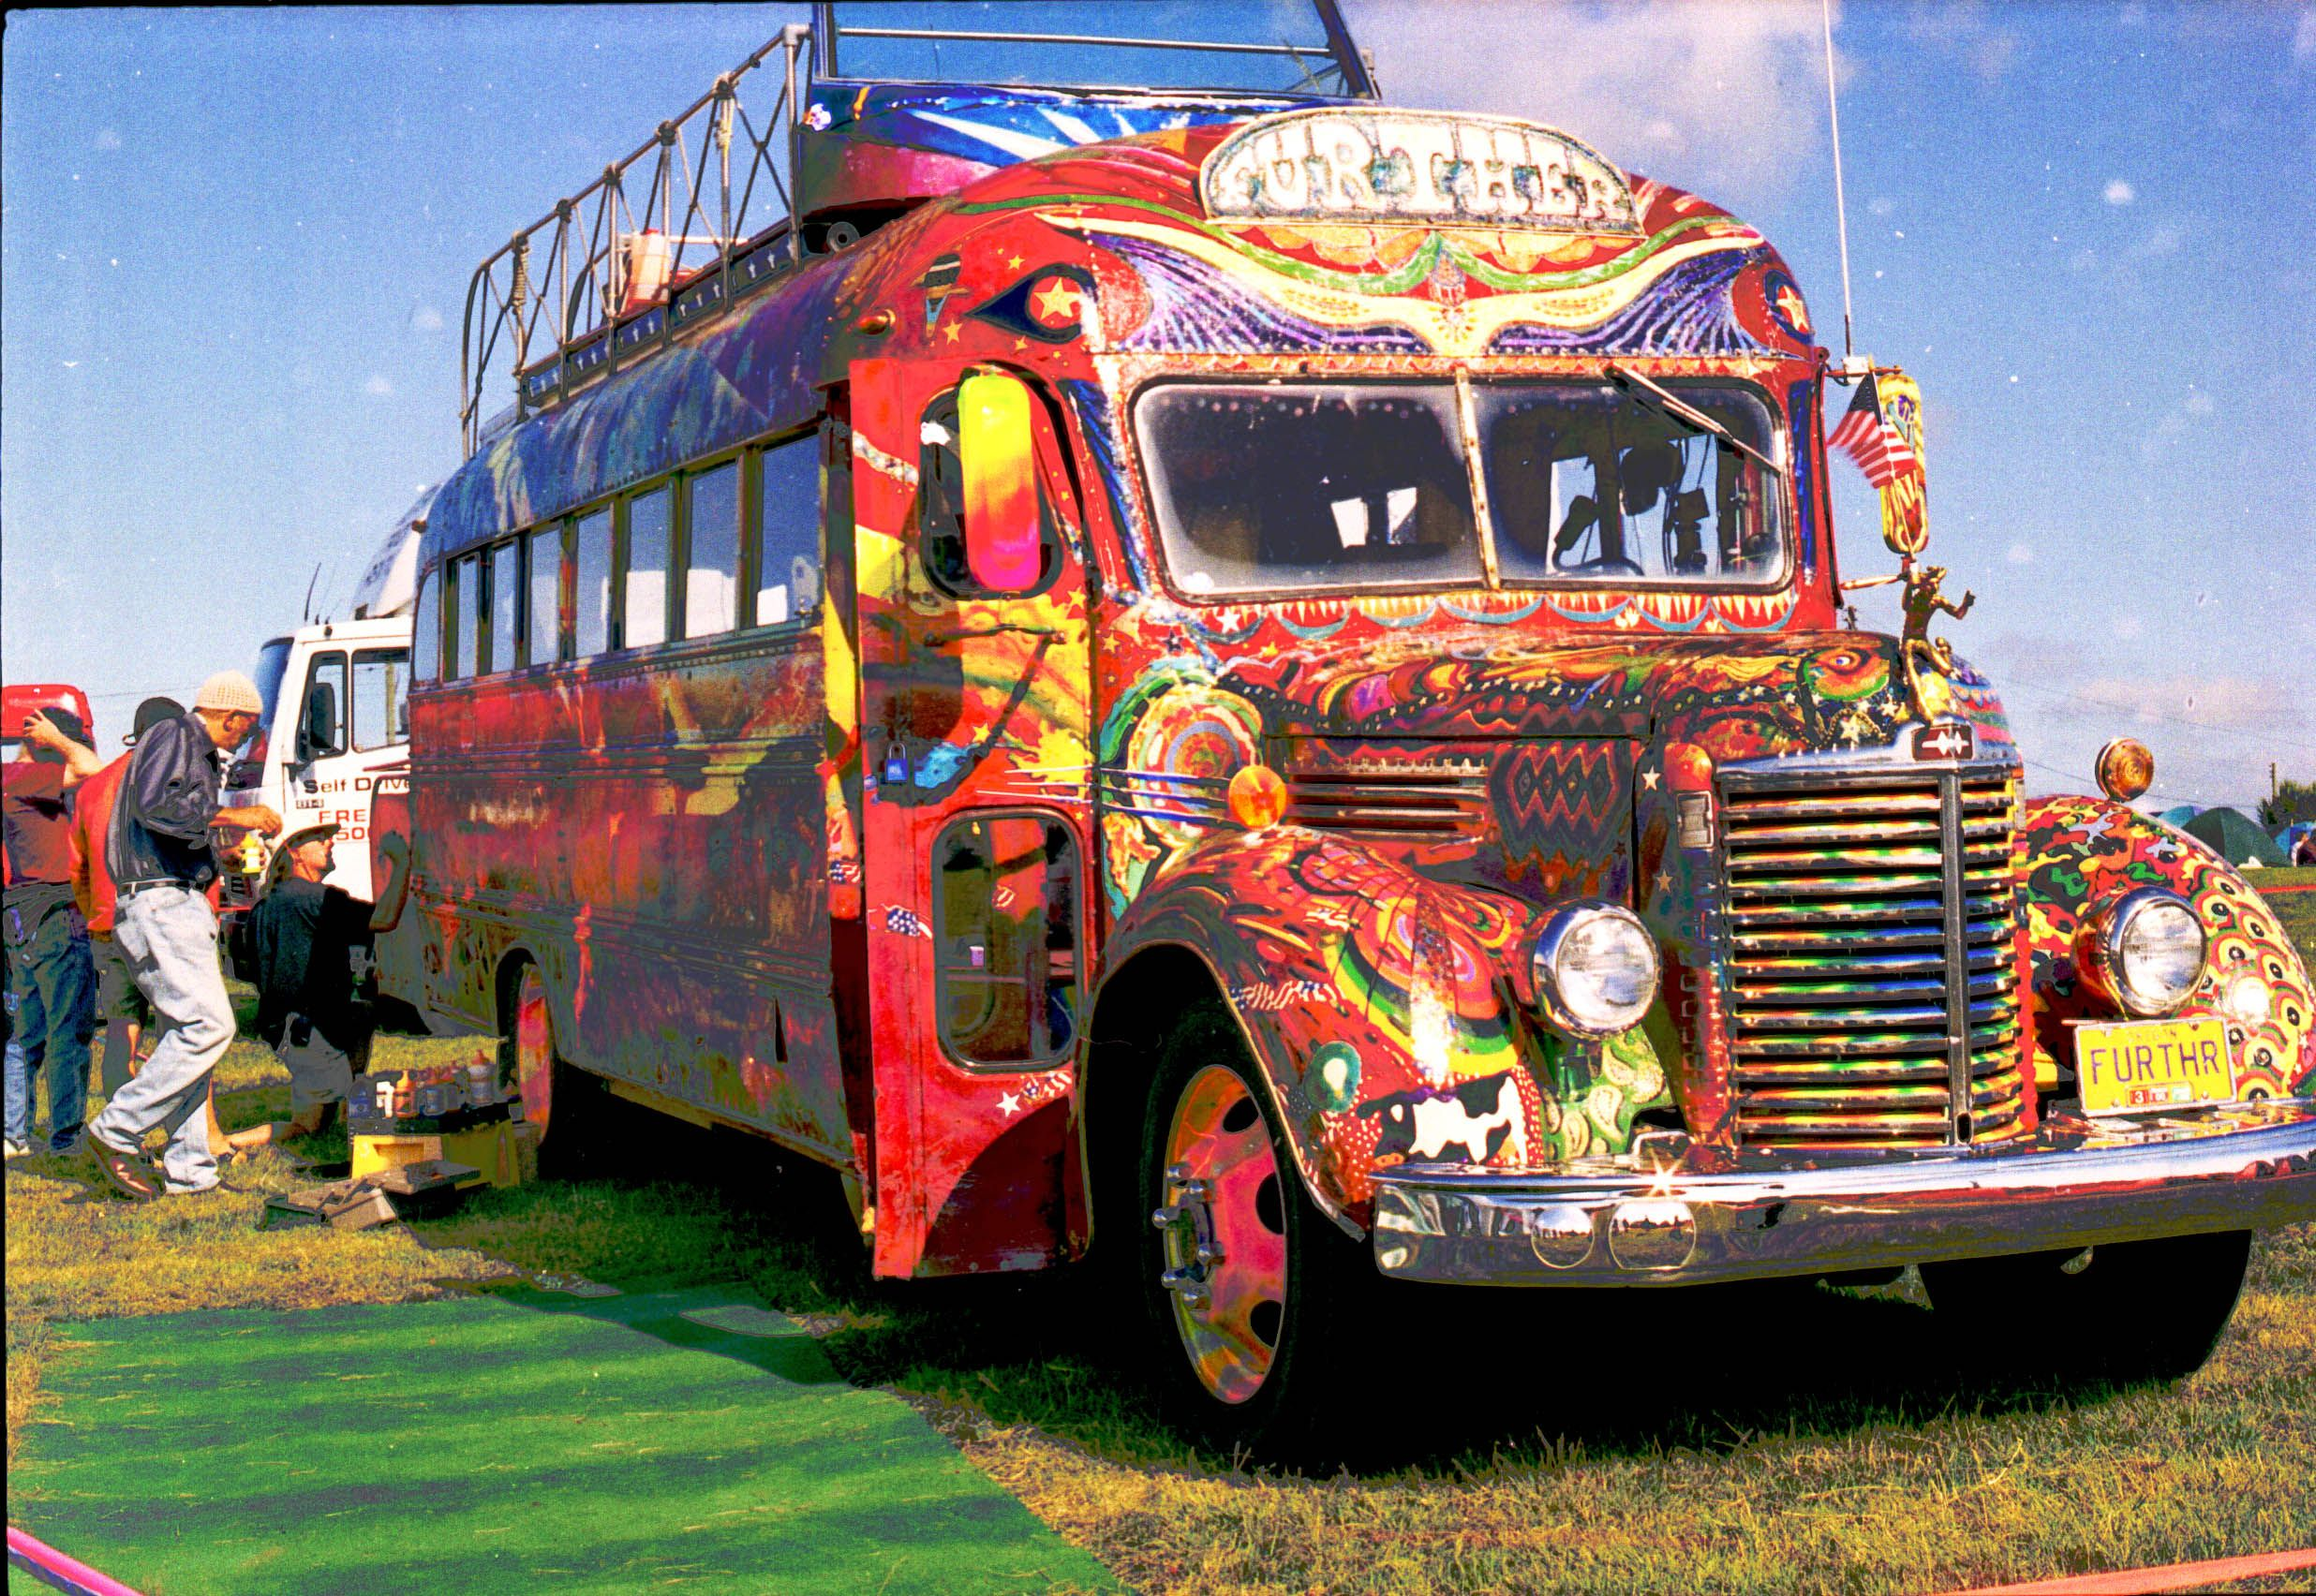 Weird Load: Ken Kesey and the Merry Pranksters 50 Years On